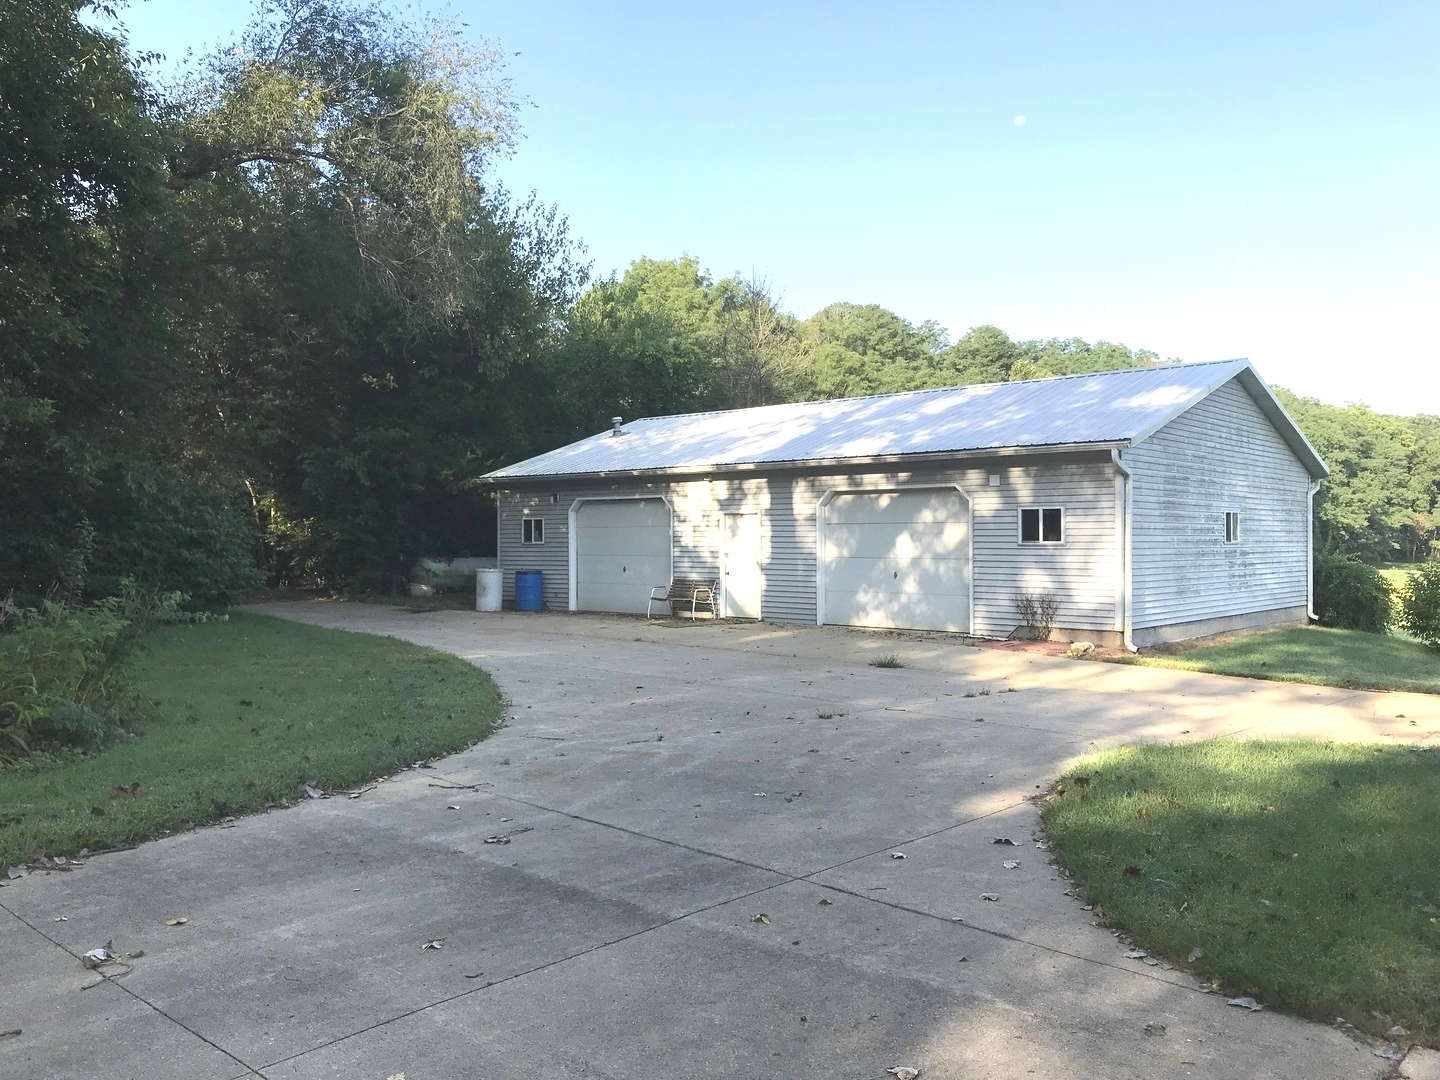 16951 1200 North, WYANET, Illinois, 61379